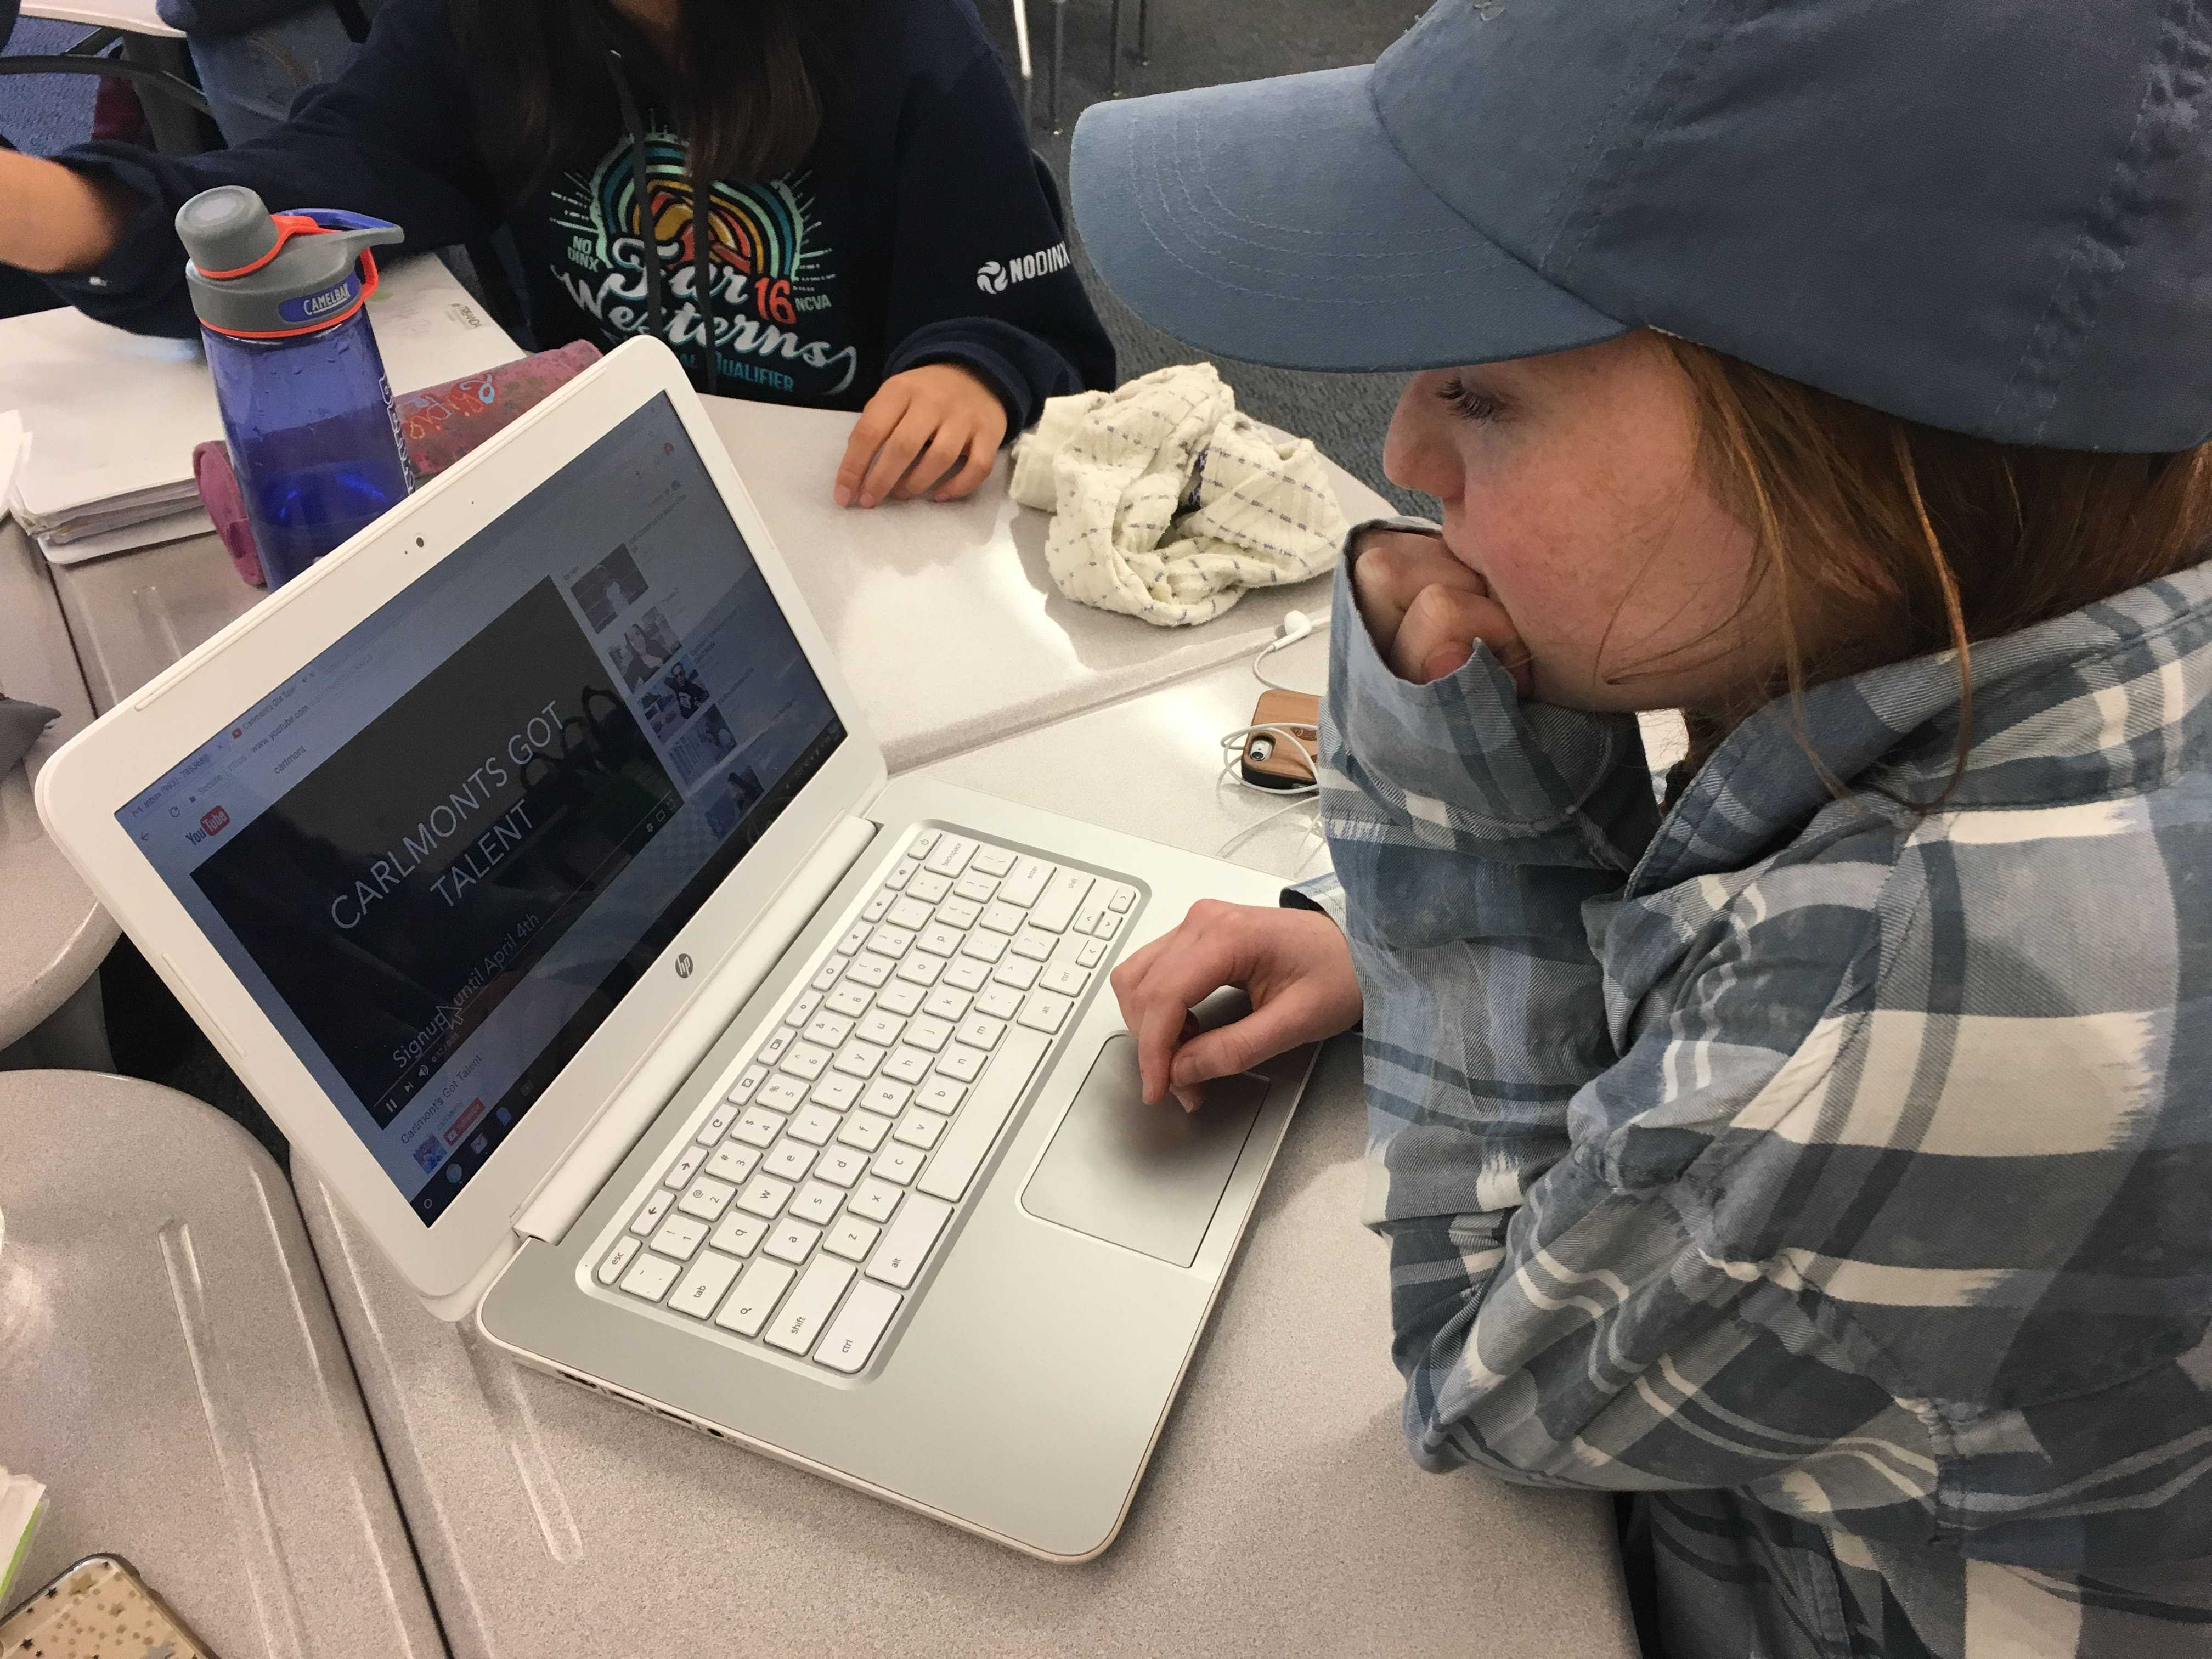 Elyse Geimer, a senior, watches a recent video about the upcoming event